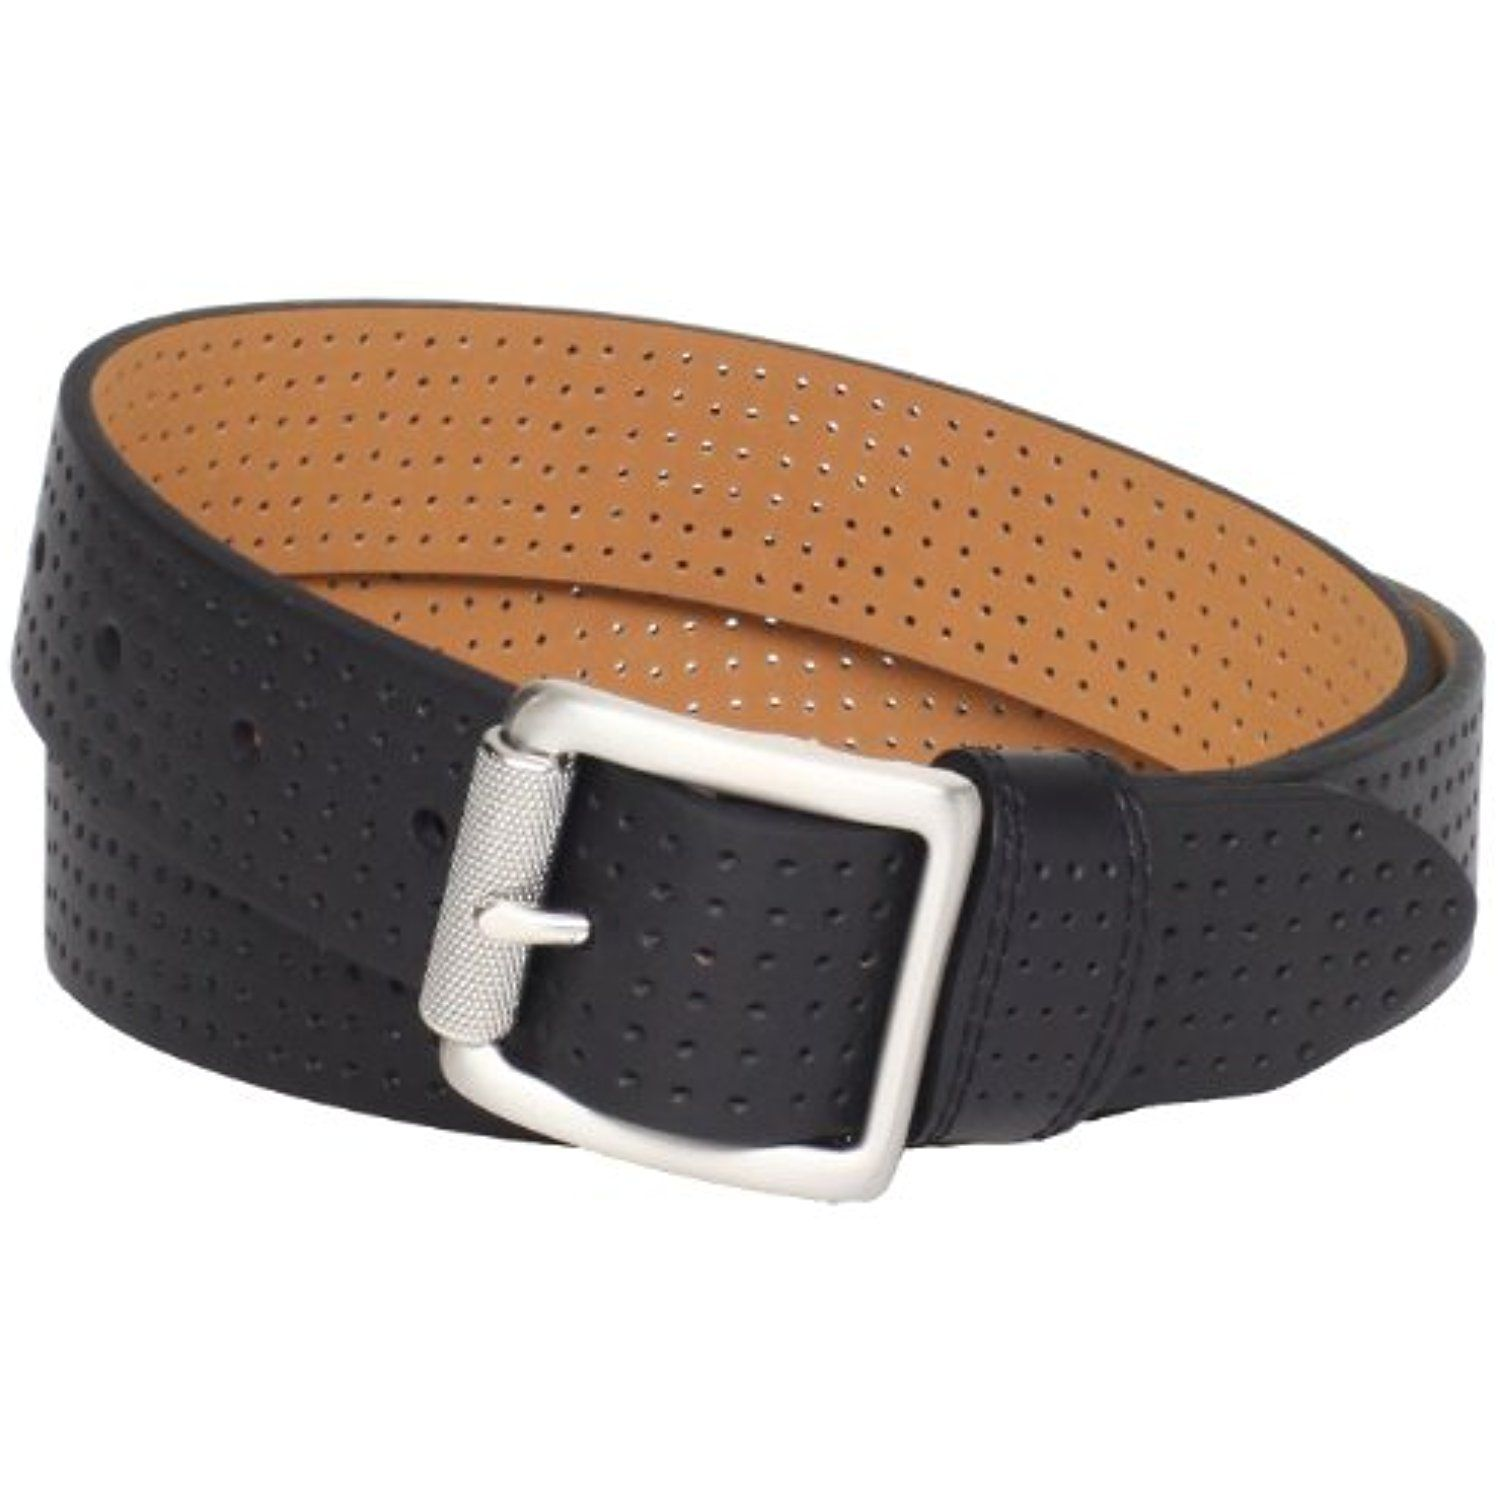 63bc19073 NIKE Women s Golf Perforated Belt with Roller Buckle     Details can be  found by clicking on the image. (This is an affiliate link)  Accessories